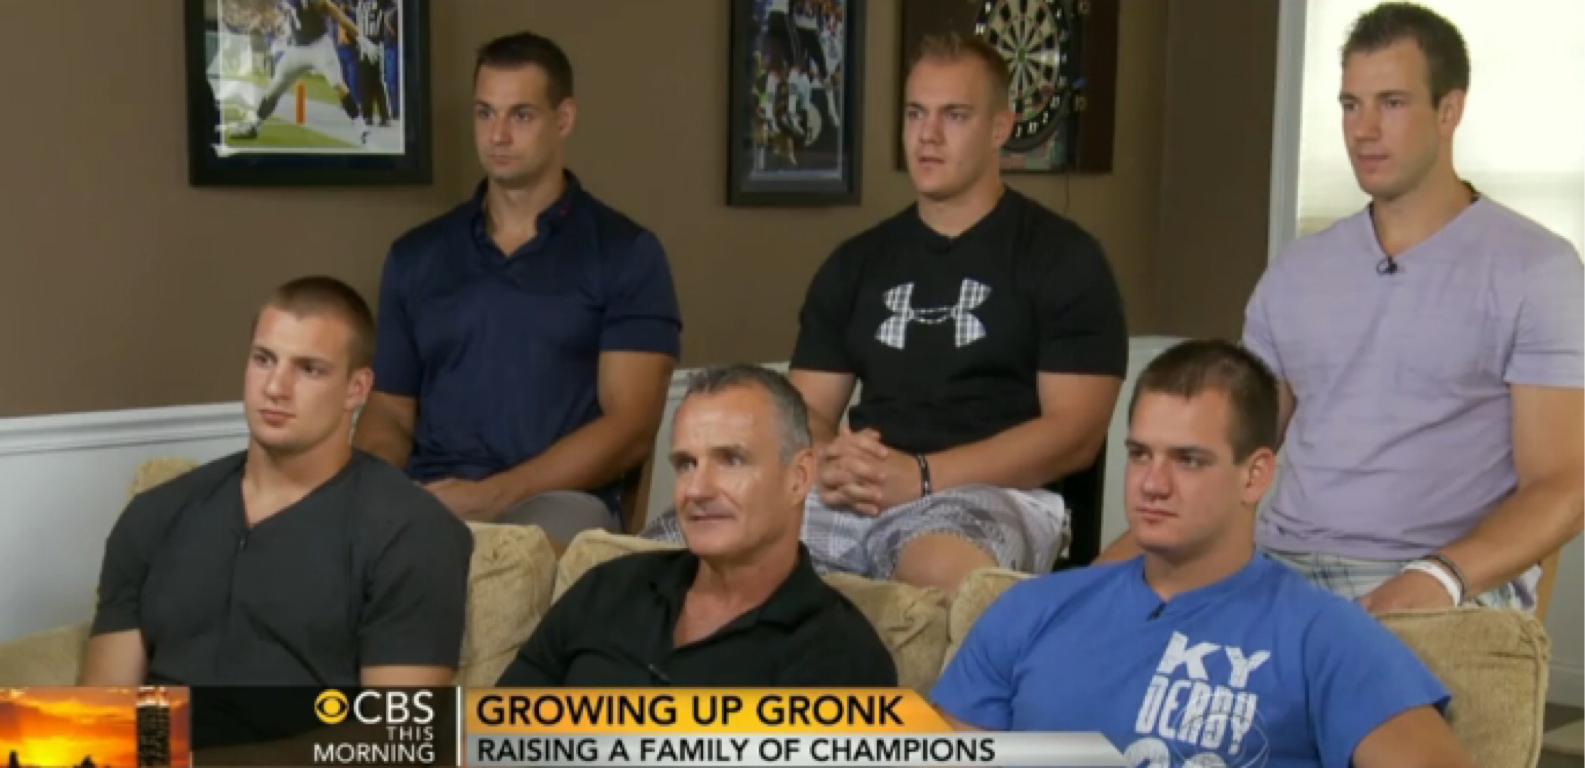 Growing Up Gronk by Patrick Cooke